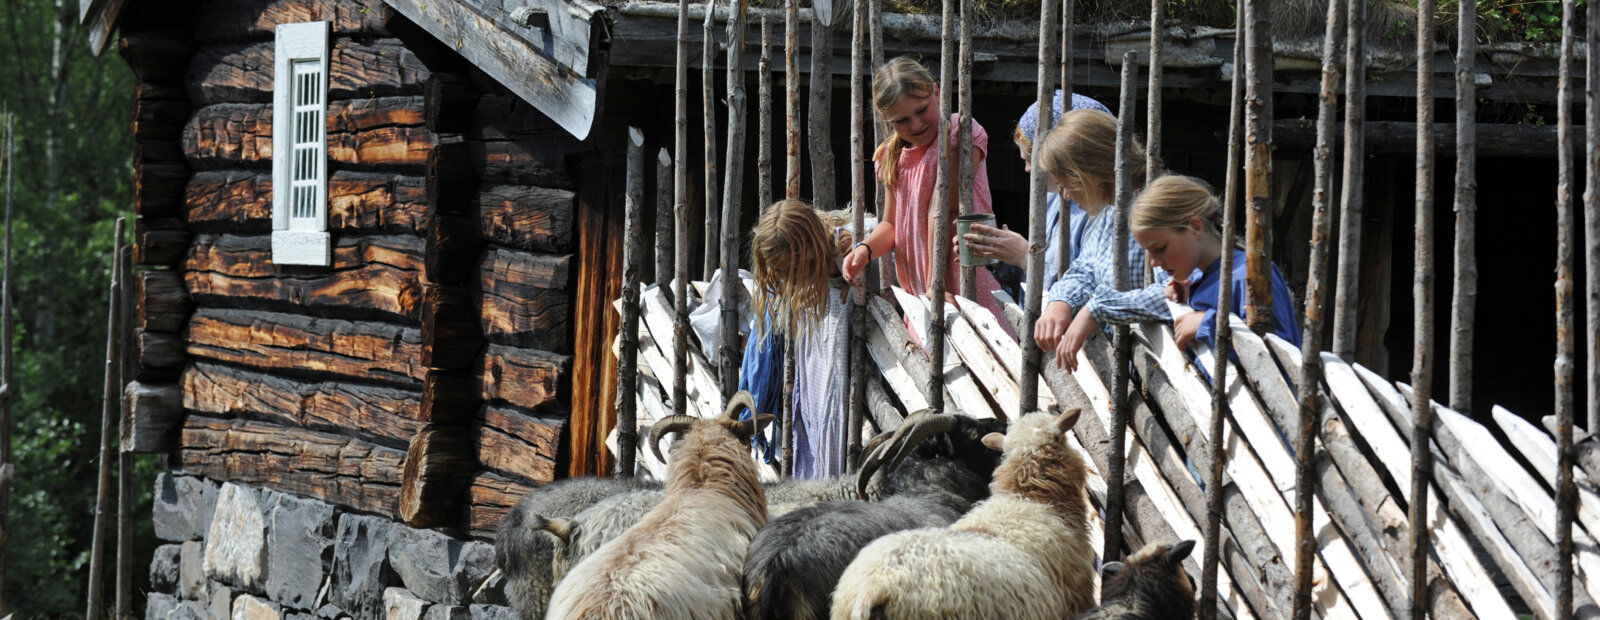 Children and sheep at Maihaugen open-air museum.